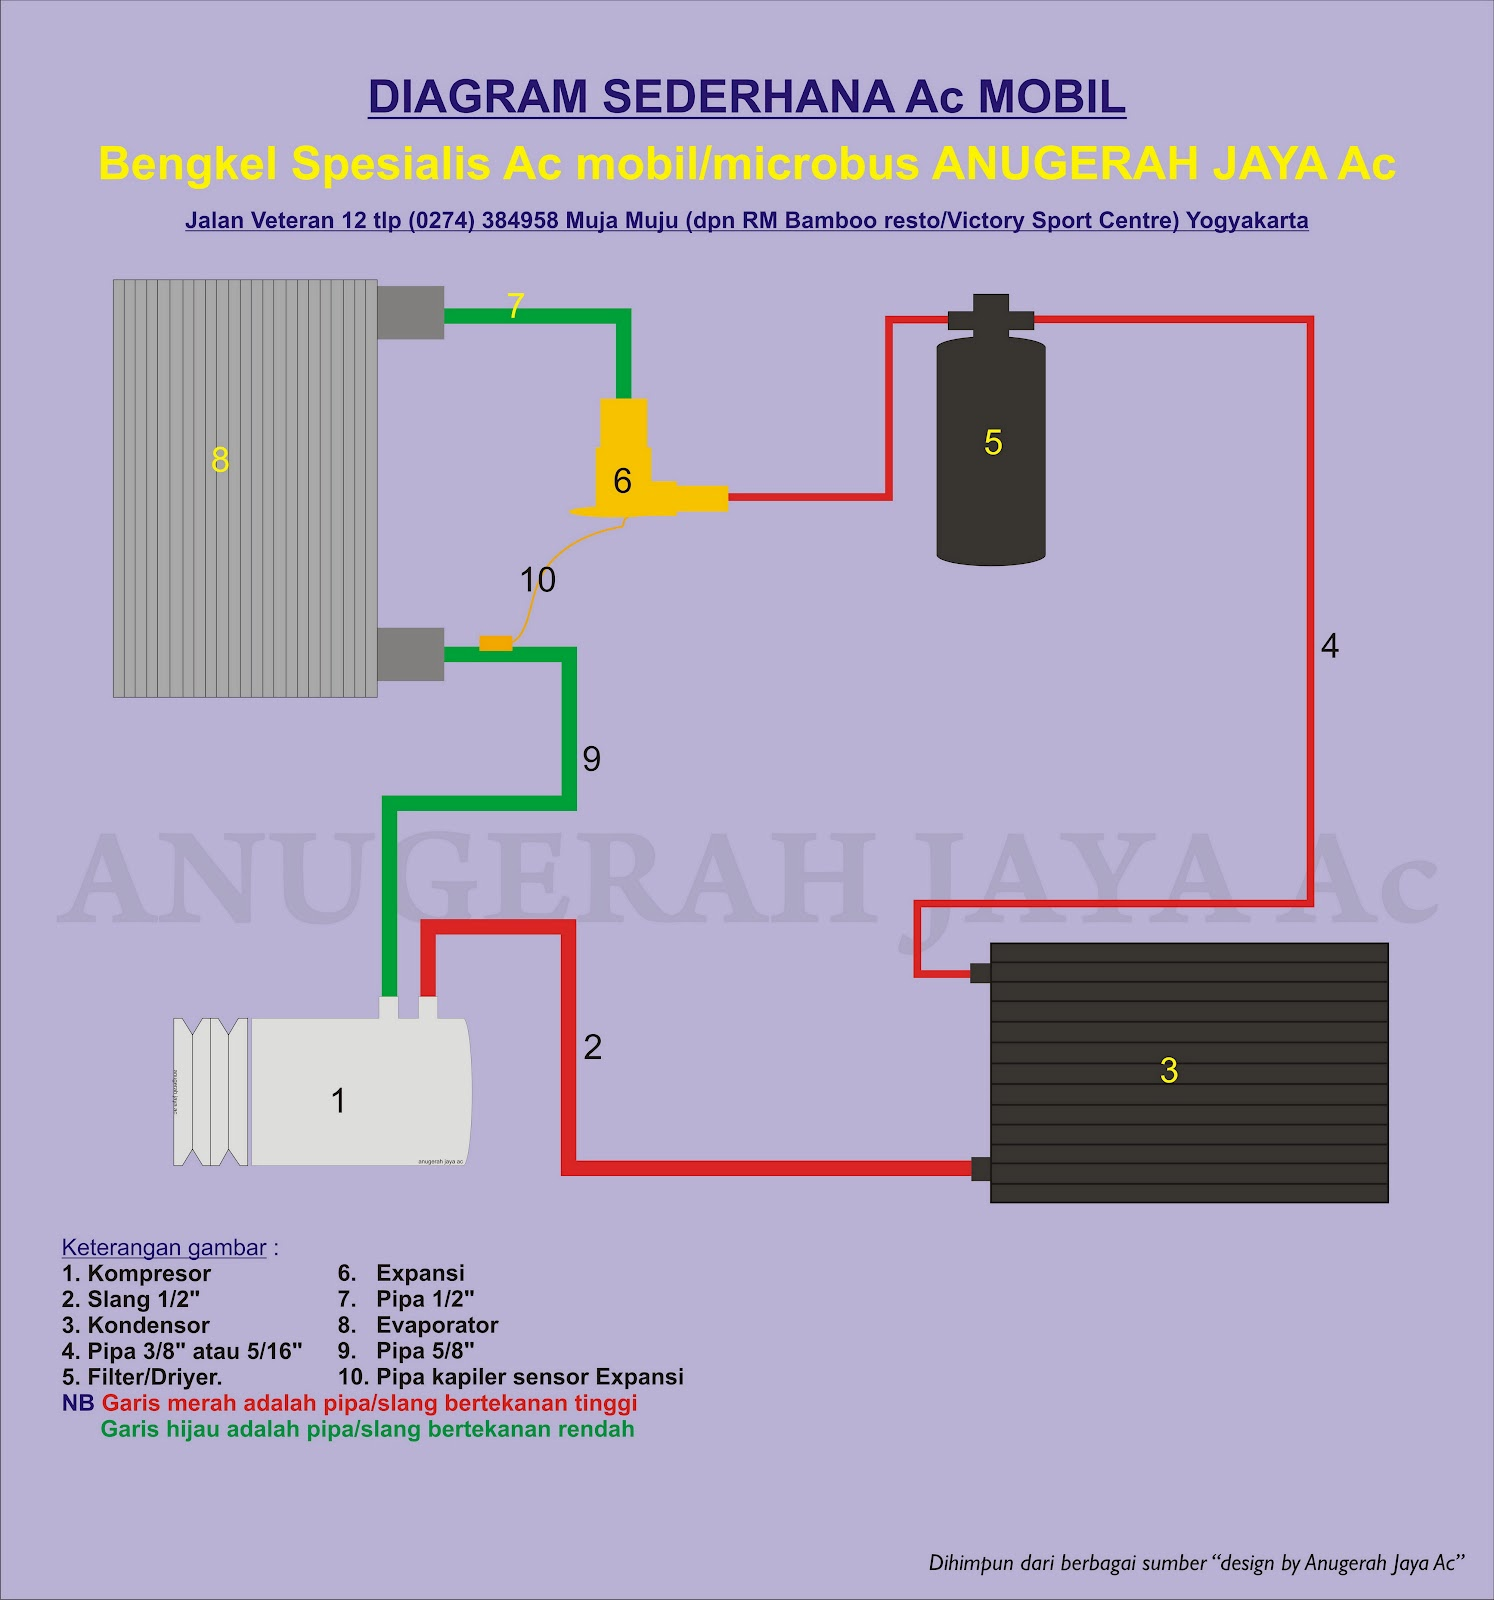 36C9 Wiring Diagram Ac Daihatsu Taruna - Wiring Diagrams ... on flexible underground conduit wiring, diode wiring, refrigerator wiring, mc wiring, electric guitar wiring, trailer wiring, circuit wiring, air conditioner compressor wiring, safety damaged wiring, dodge wiring, ceiling fan speed control wiring, motion sensor wiring, a light switch wiring, alternator wiring, sub panel wiring, tstat wiring,